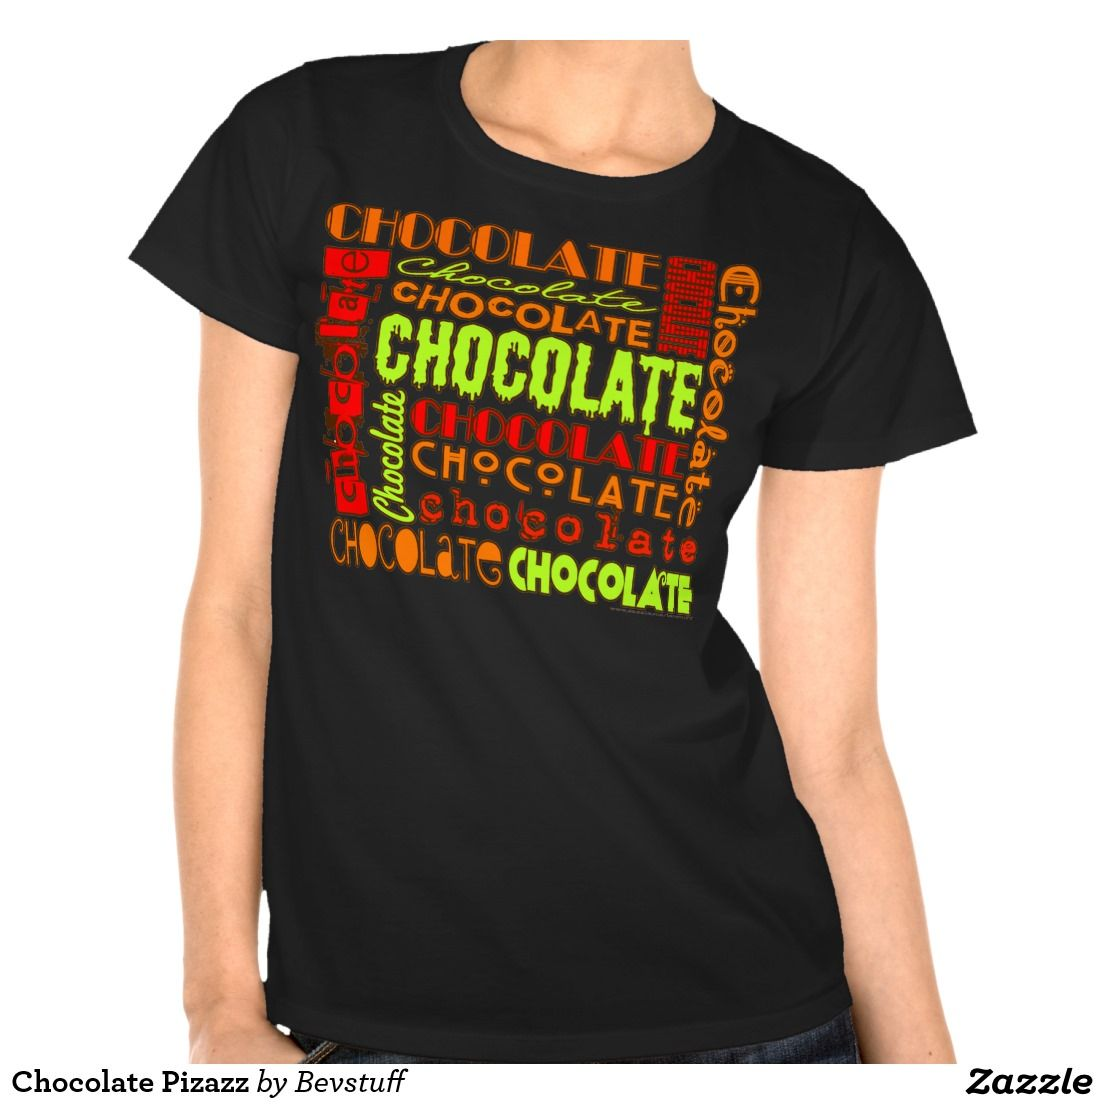 Color art tipografia - Chocolate Pizazz Tee Shirts Vibrant Chocolate Typography Many Shirt Styles Colors For